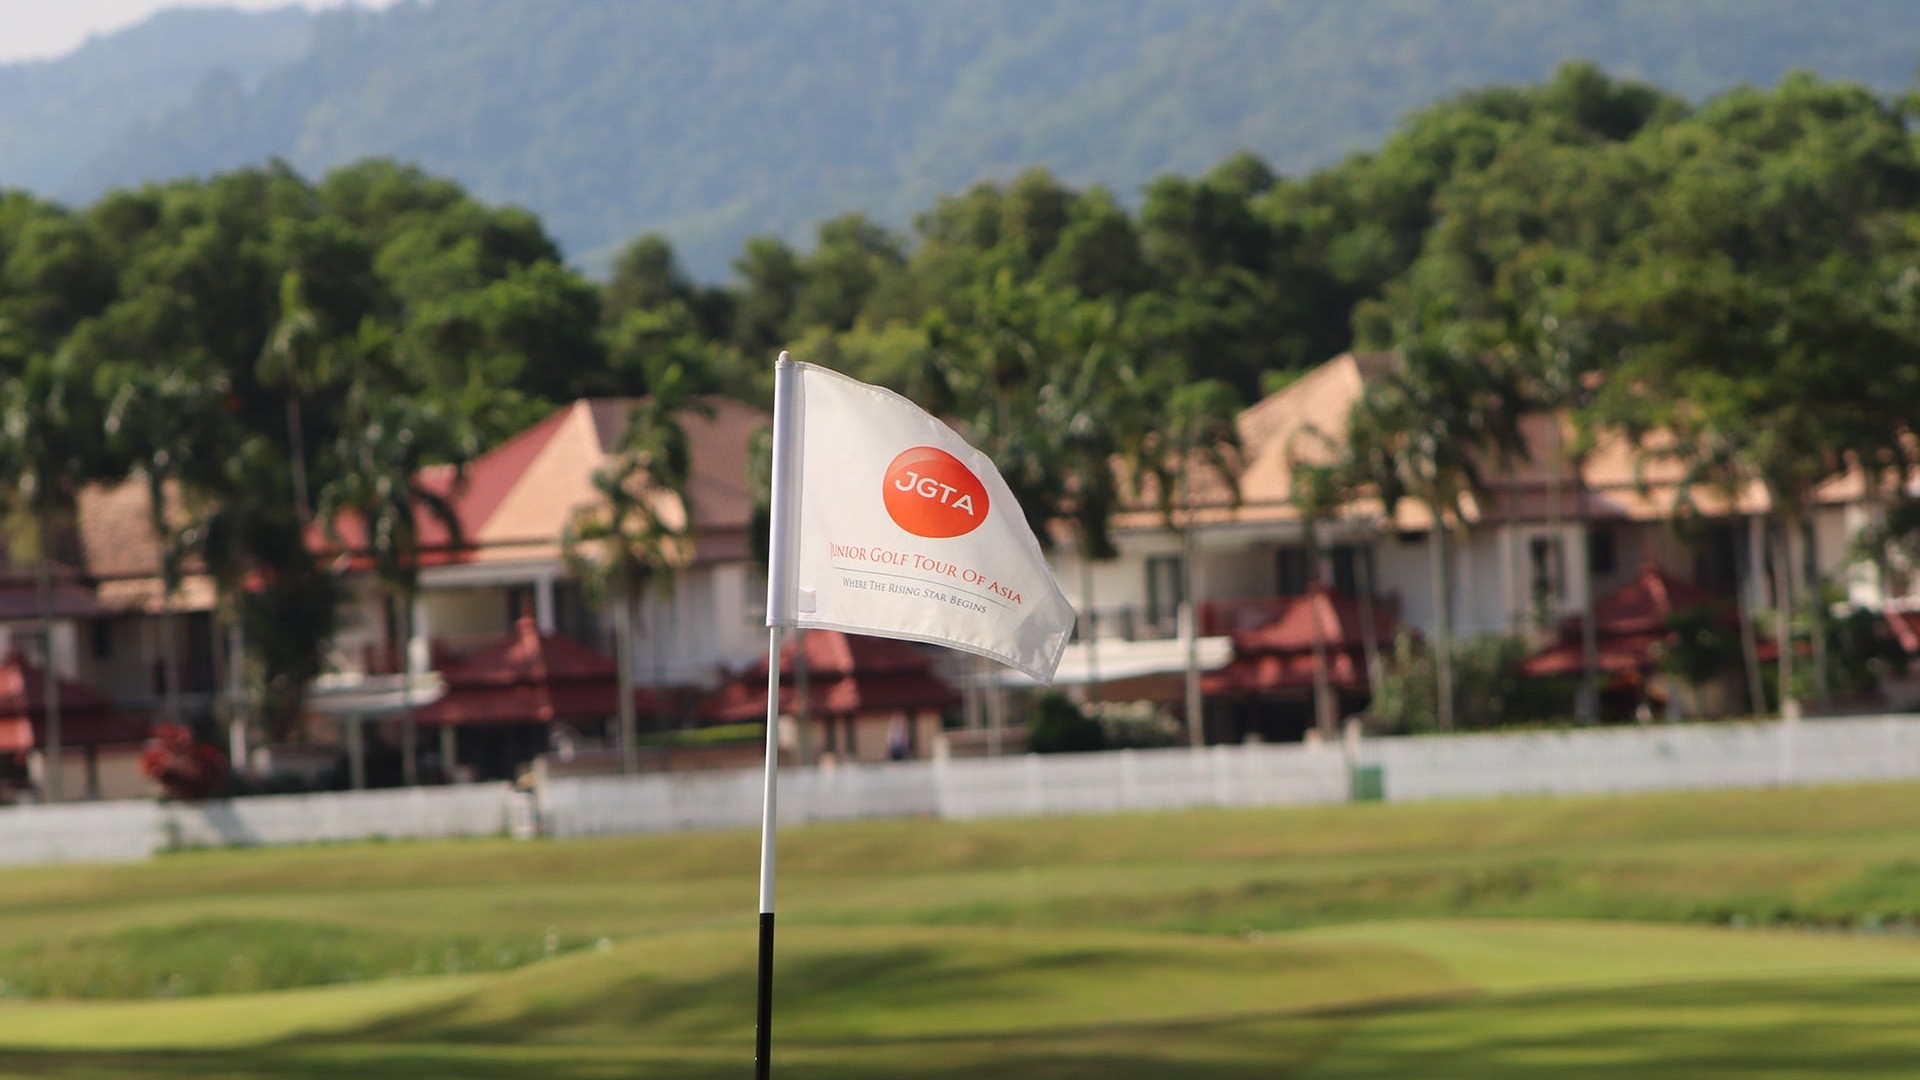 JGTA Phuket Junior Open Flag